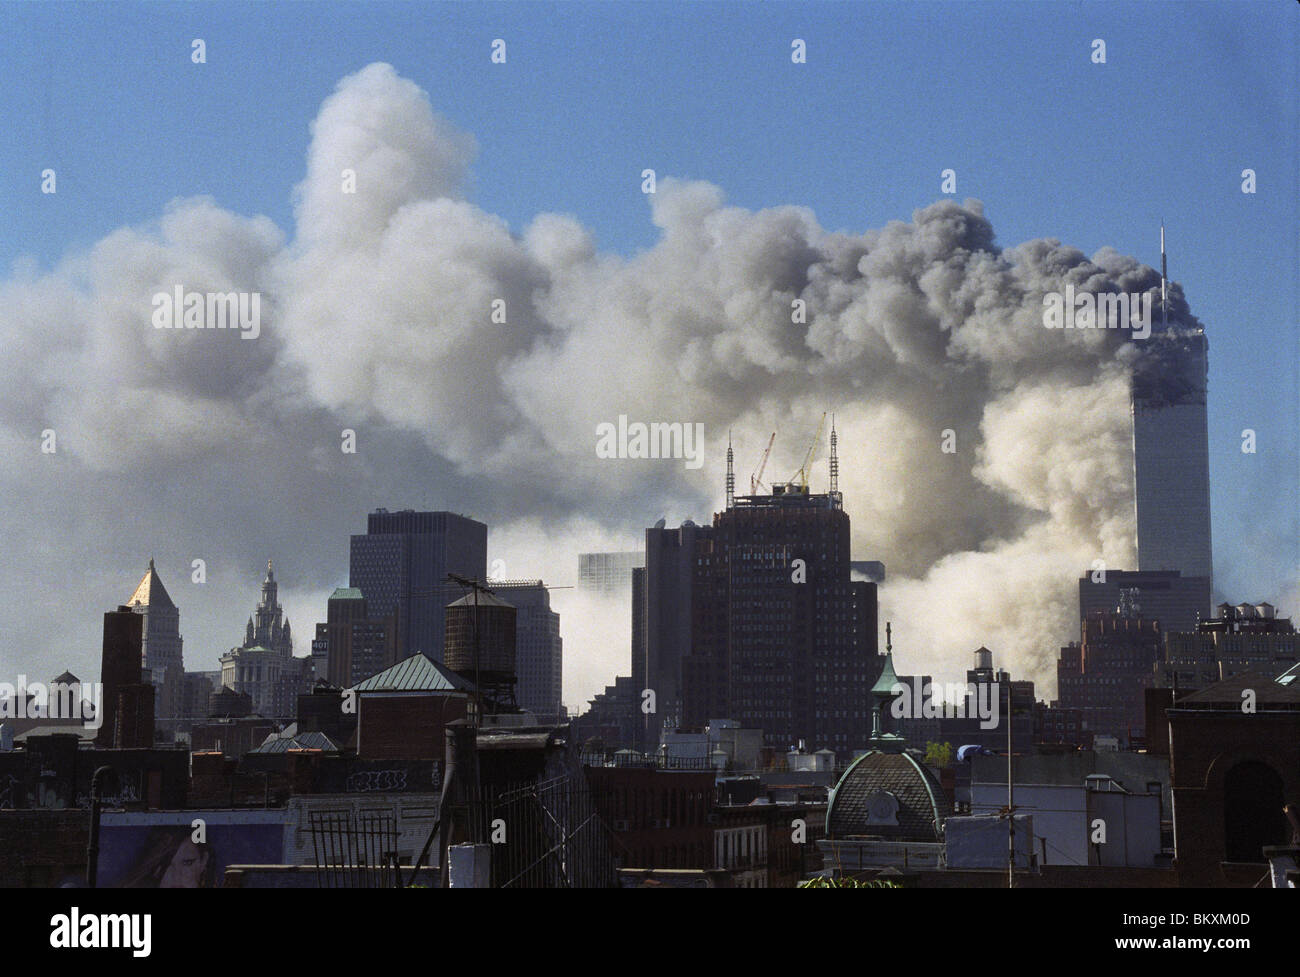 At  9:59 a.m, the south tower, 2 World Trade Center, collapsed after being hit by a plane. ©Stacy Walsh Rosenstock/Alamy - Stock Image